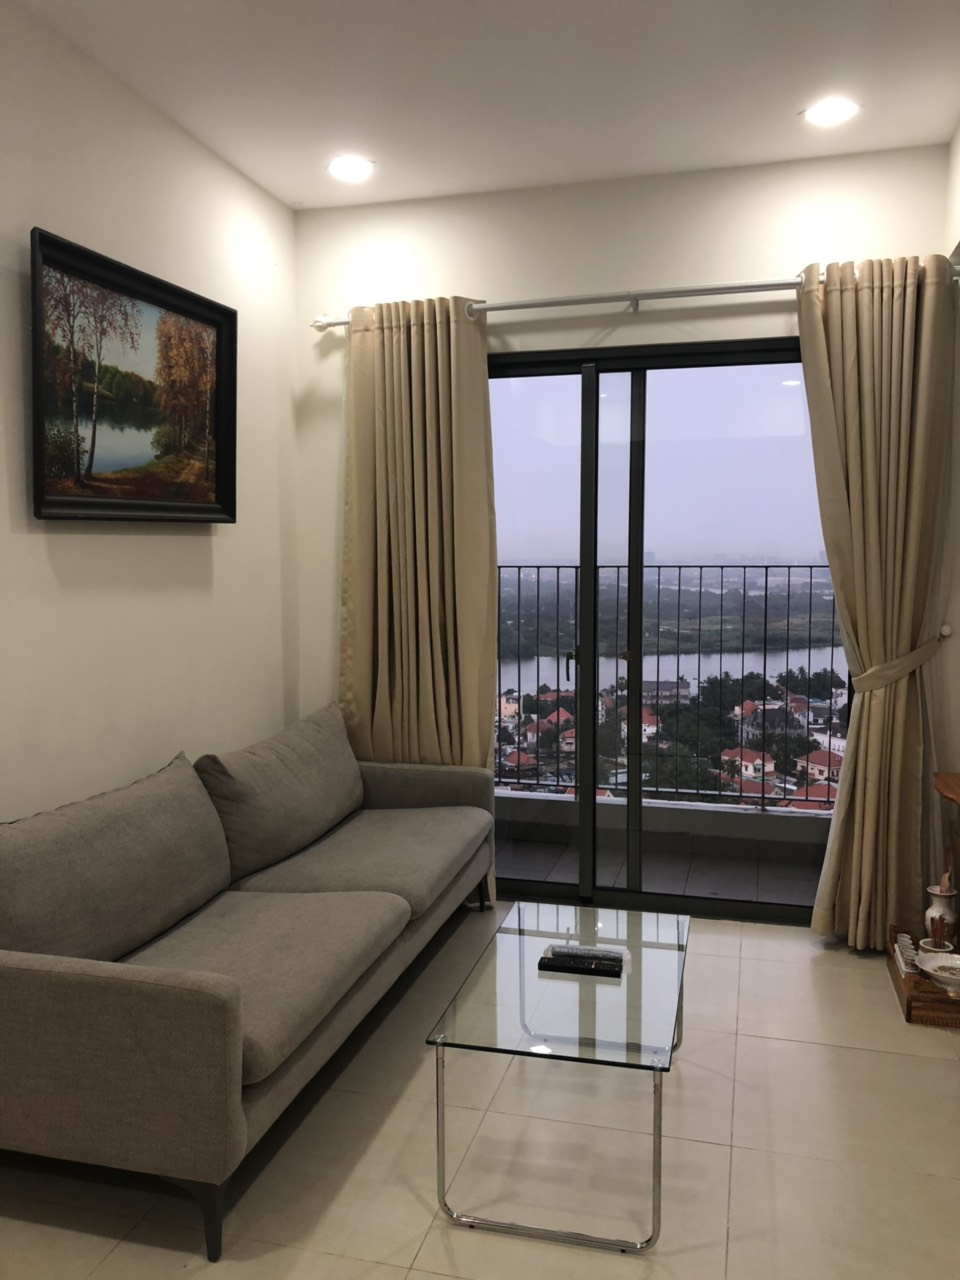 River view Masteri Thao Dien apartment for rent 2 bedrooms, fully furnished with $1000!